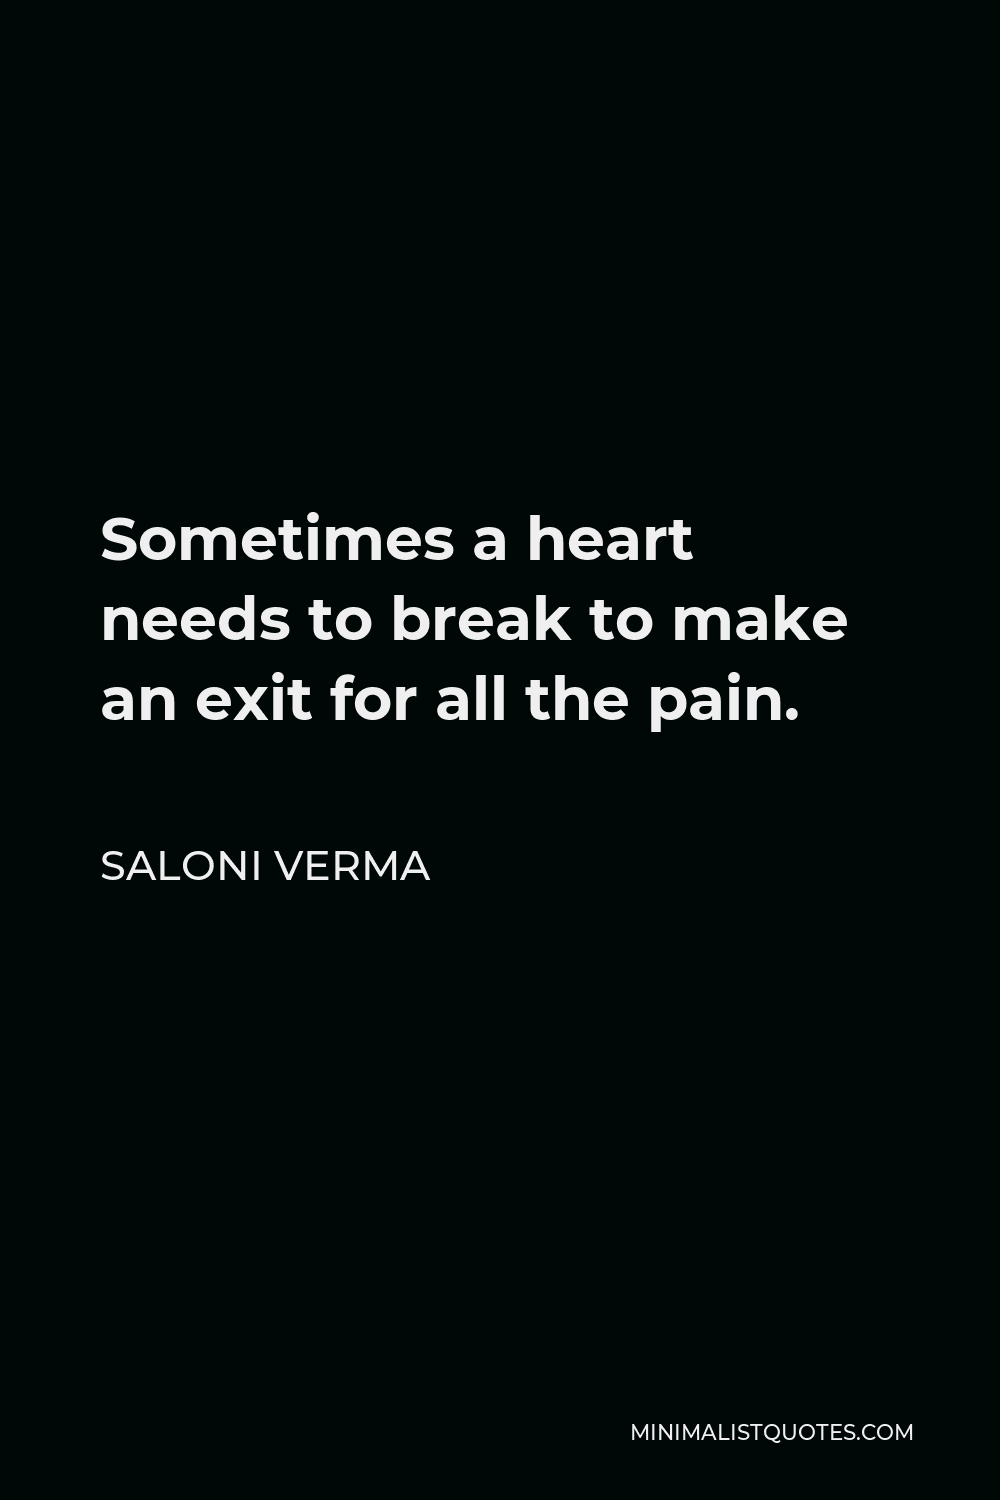 Saloni Verma Quote - Sometimes a heart needs to break to make an exit for all the pain.